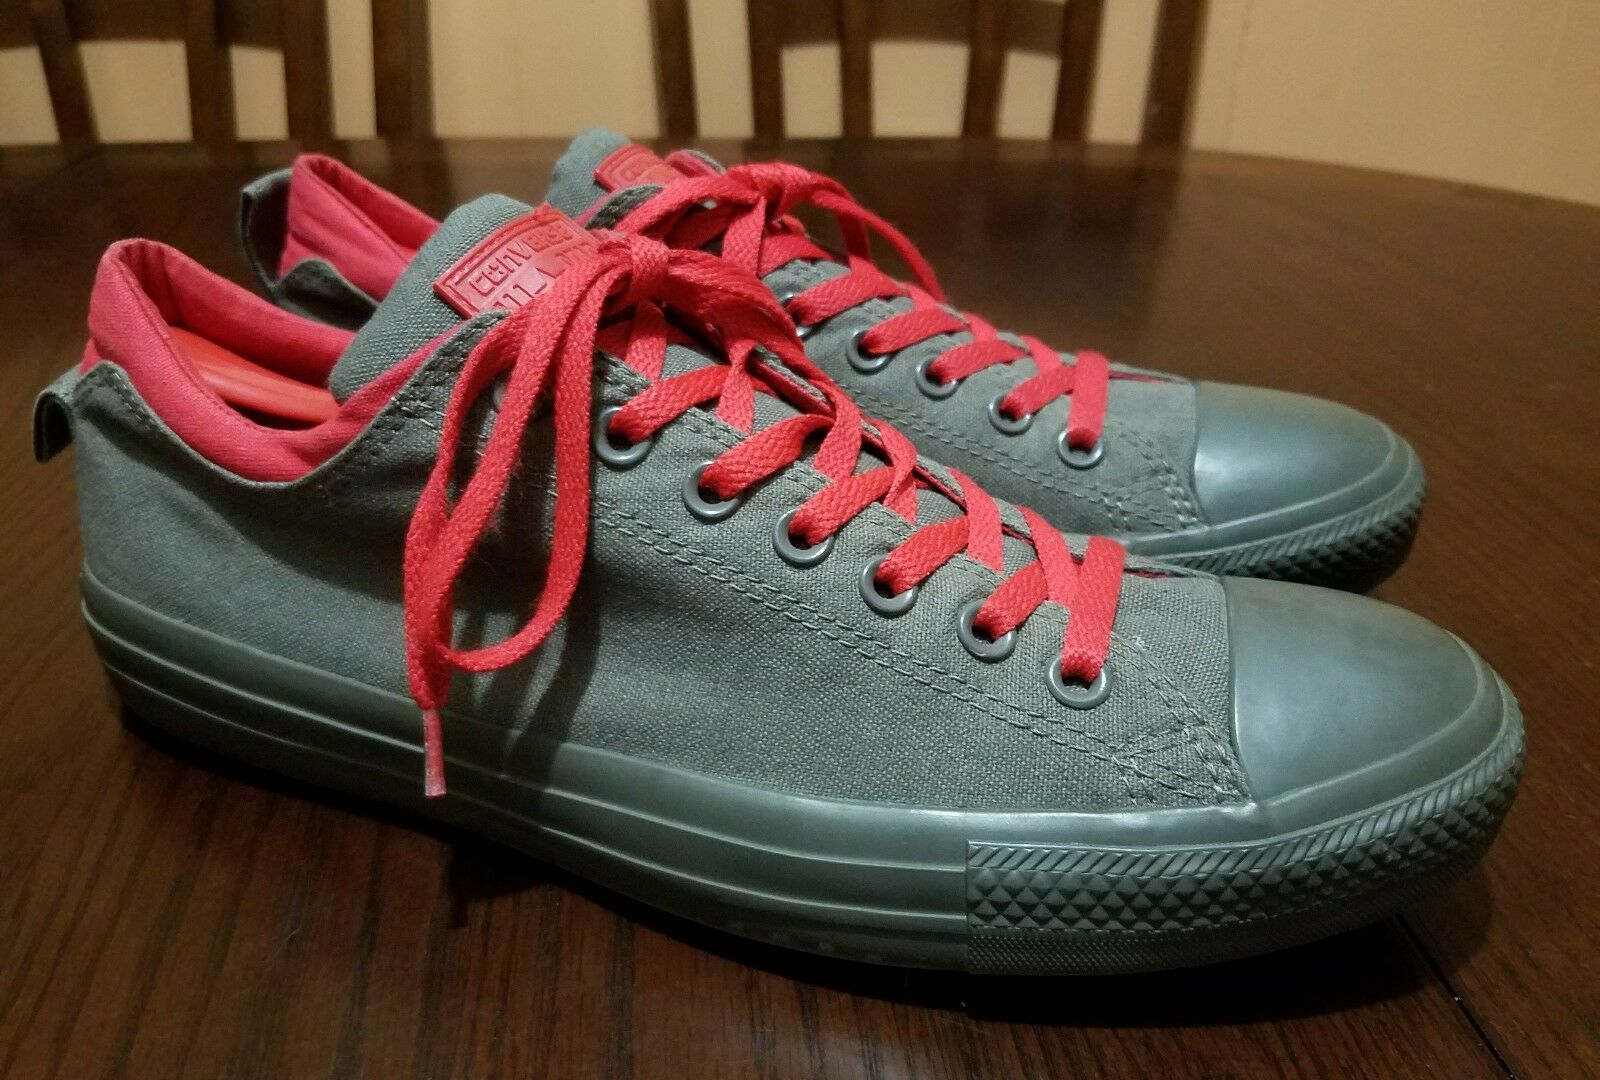 984af238d3f6 CONVERSE Green Red Fashion Sneakers Size Size Size MEN S 10.5